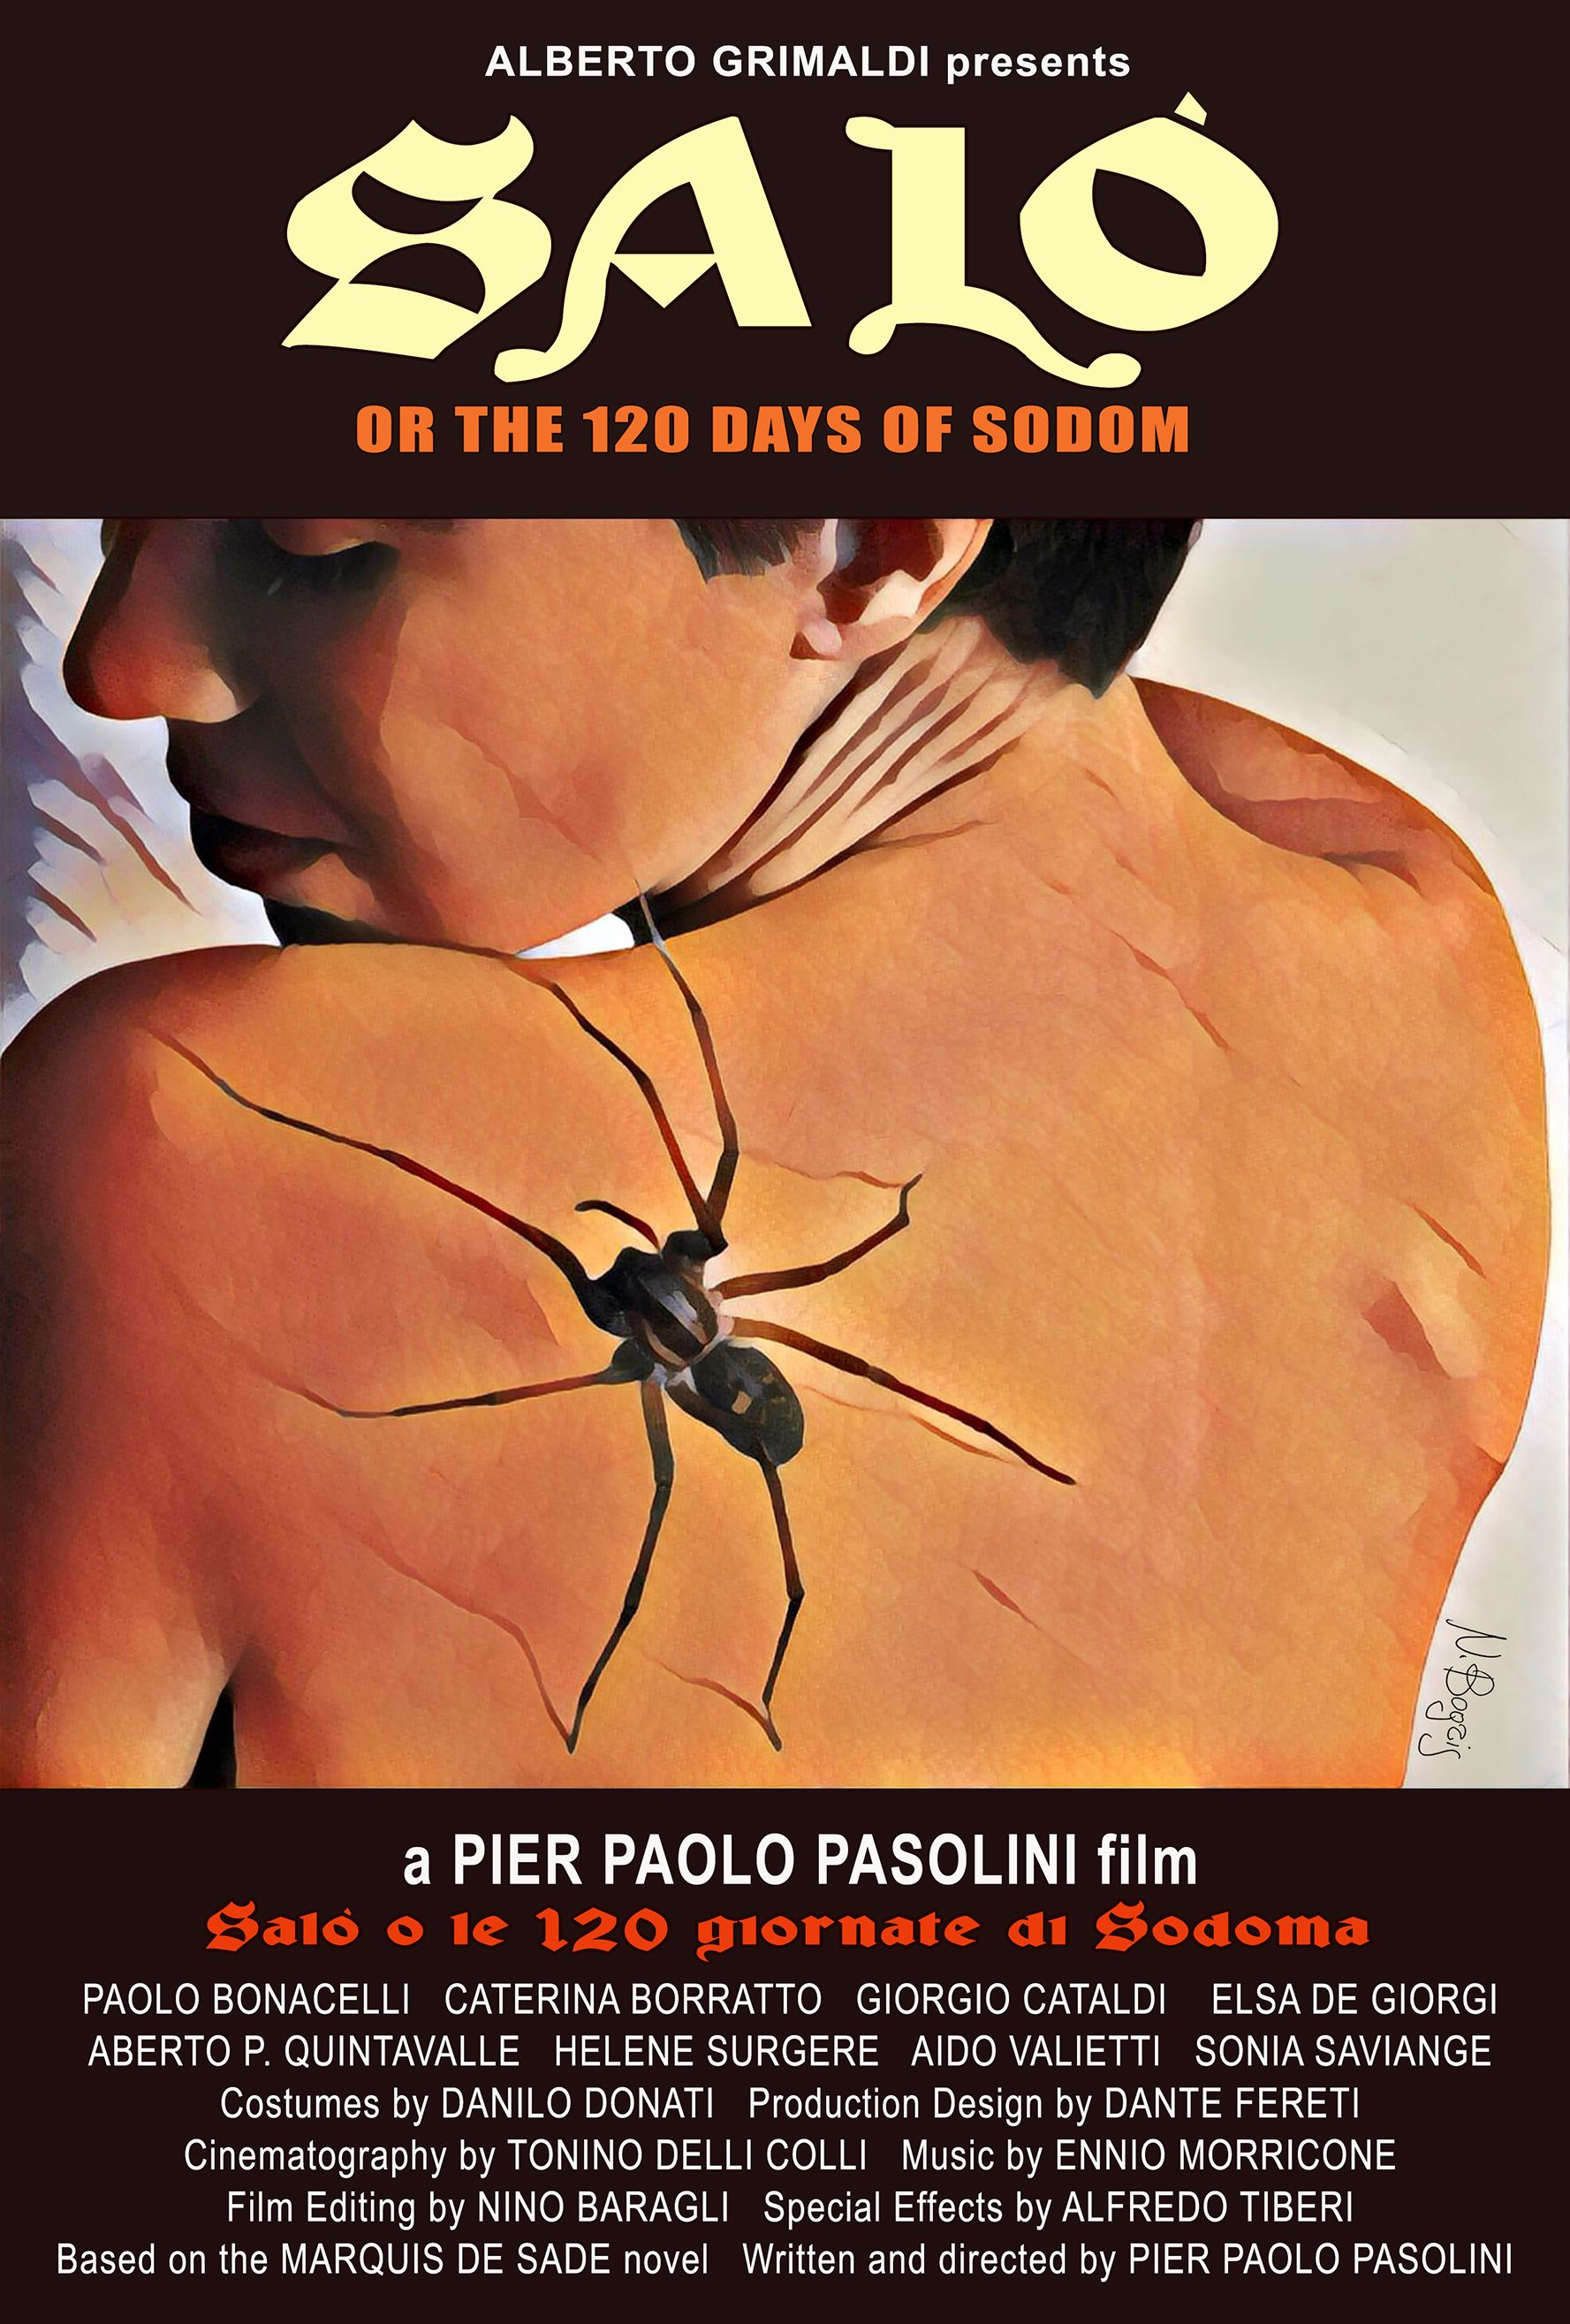 Salo, or the 120 Days of Sodom | Cinema posters, Best movie posters, Movie posters